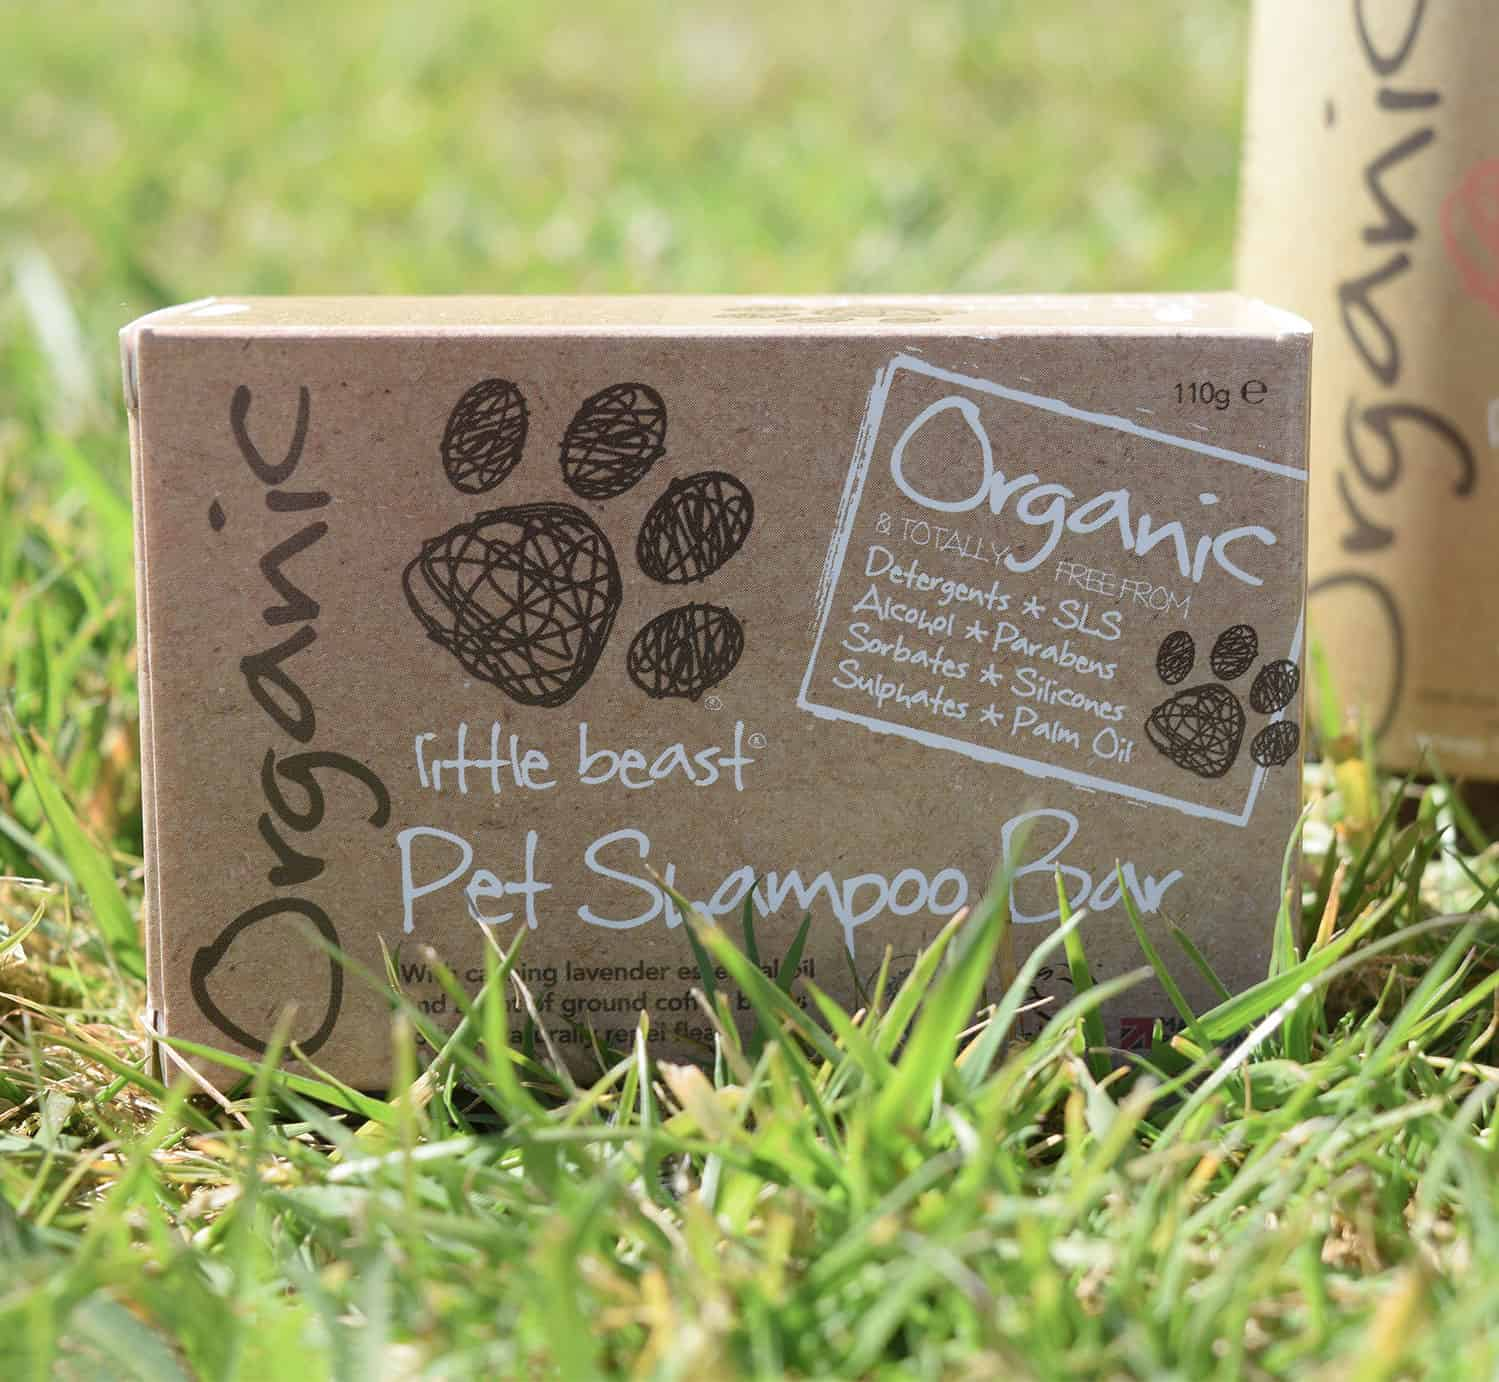 Little Beast Pet Shampoo Bar: Everything You Need to Know